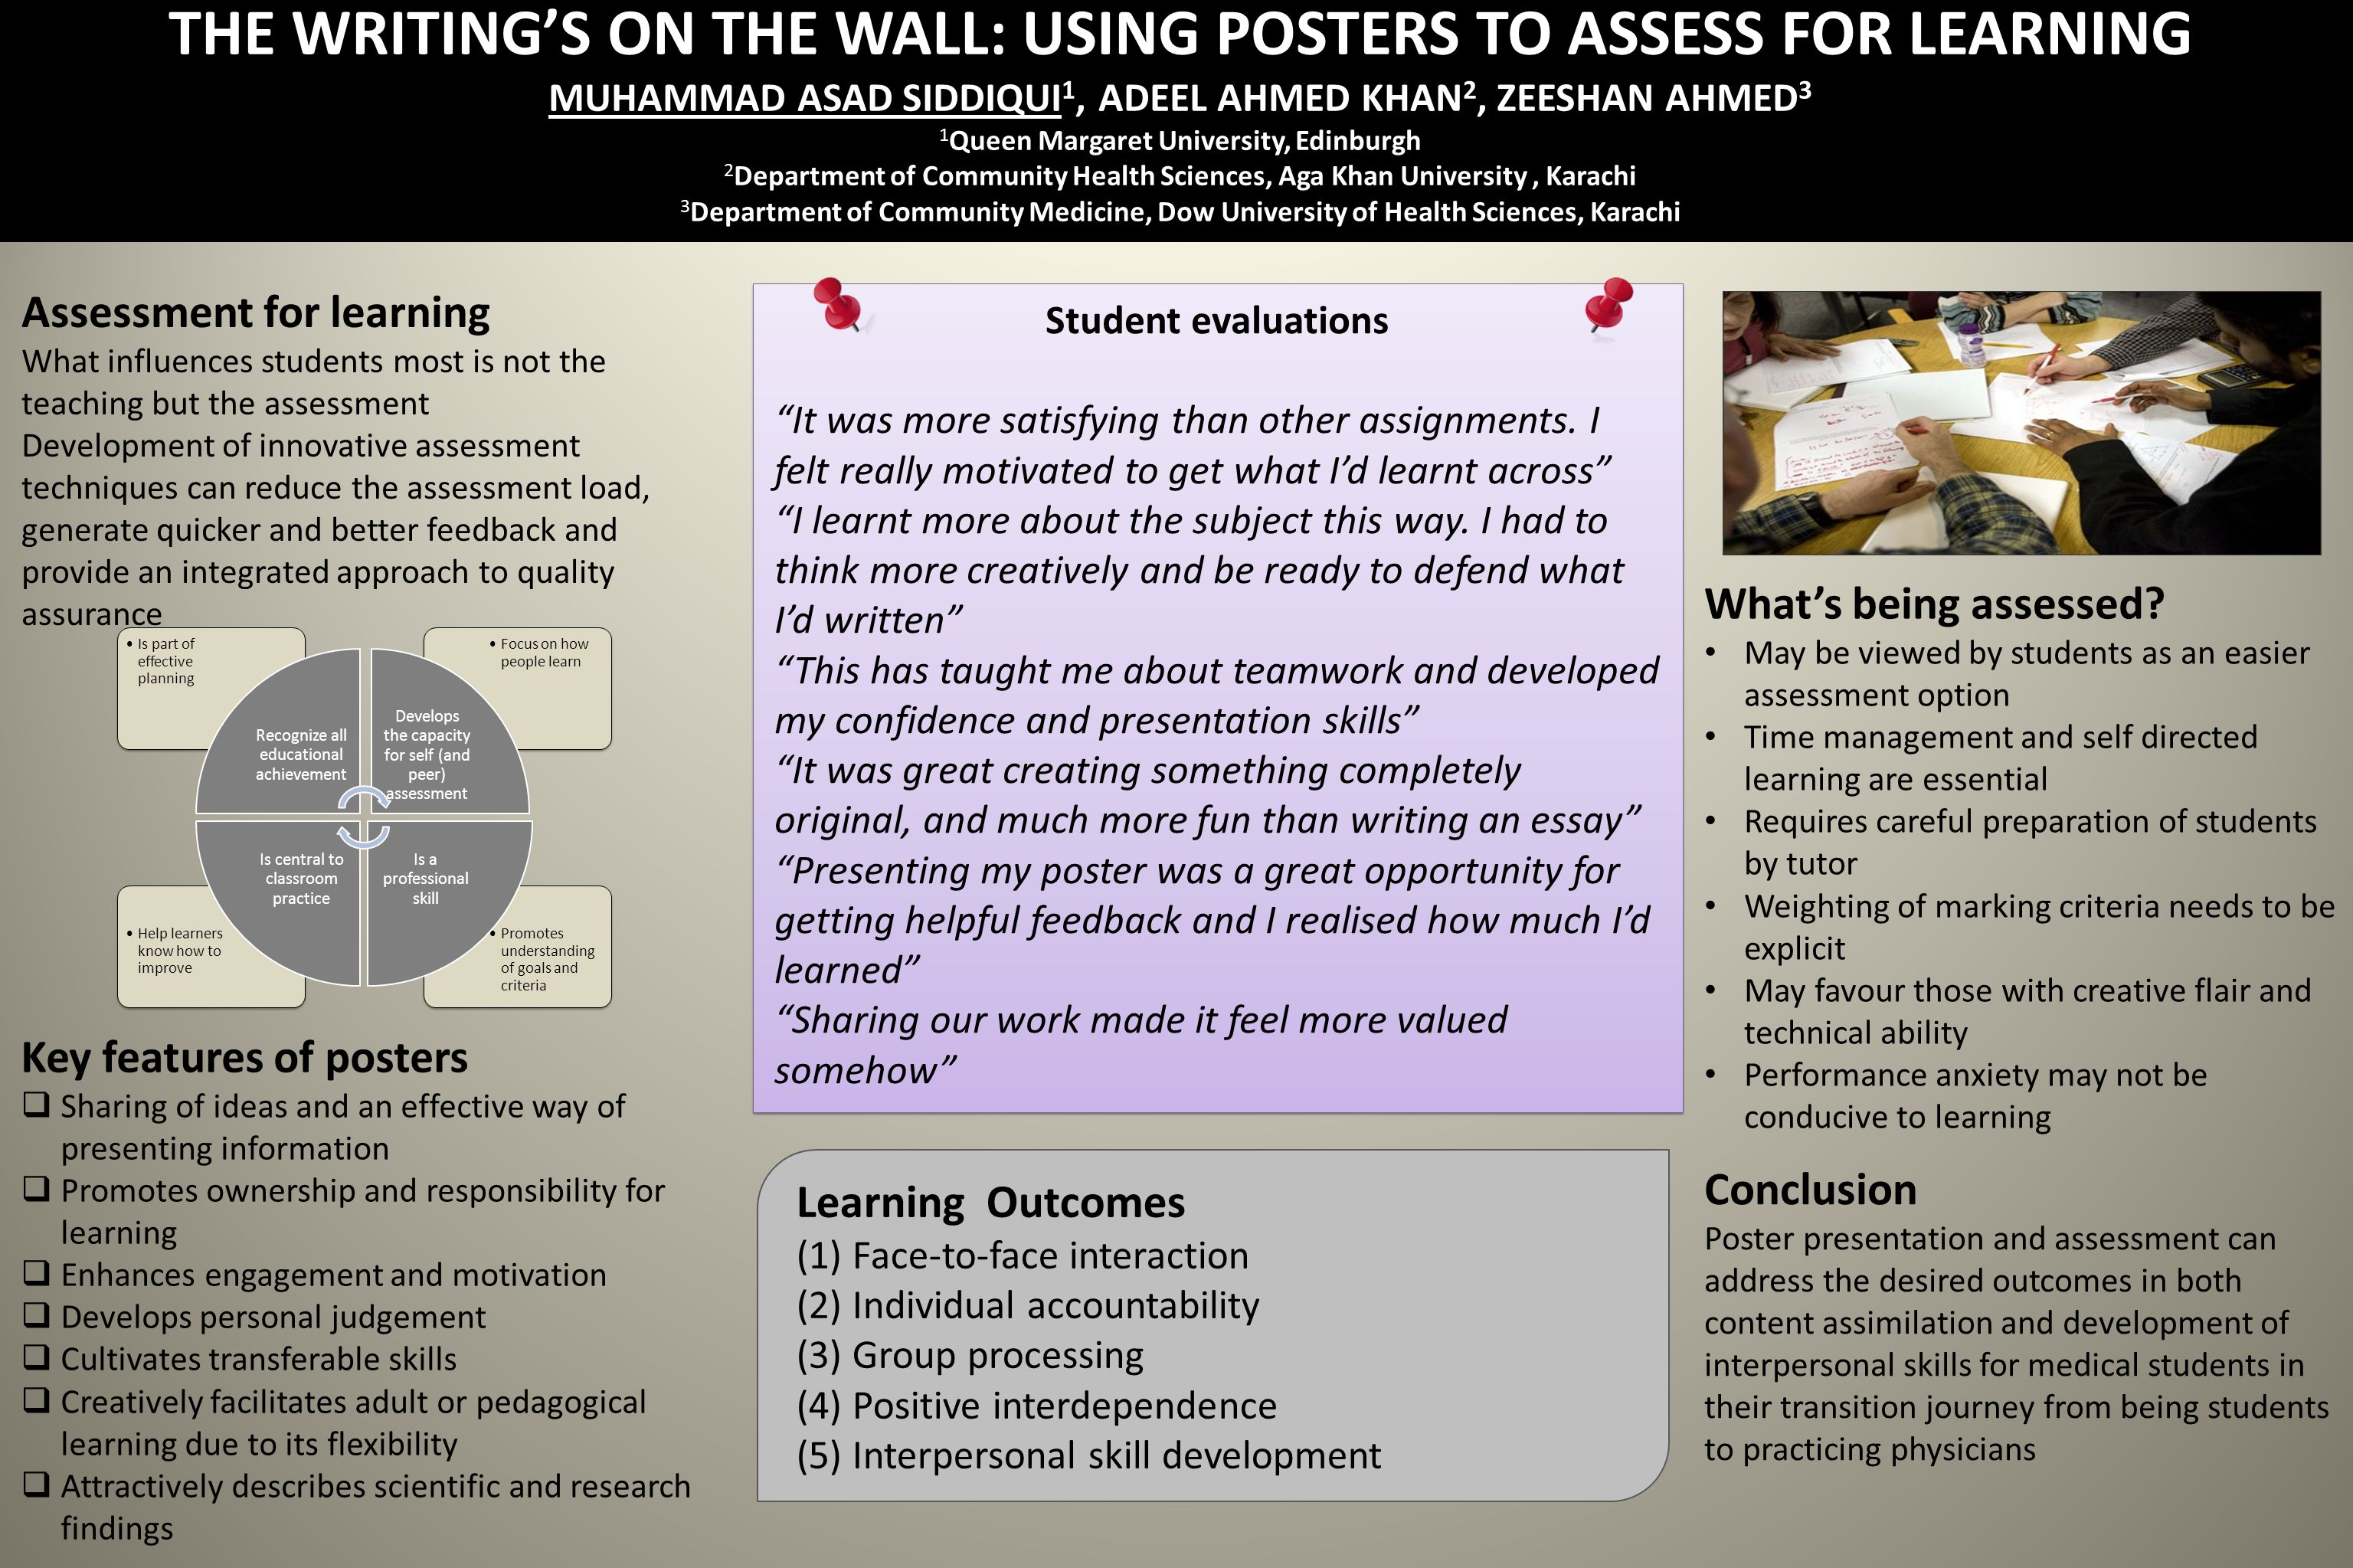 THE WRITINGS ON THE WALL: USING POSTERS TO ASSESS FOR LEARNING MUHAMMAD ASAD SIDDIQUI 1, ADEEL AHMED KHAN 2, ZEESHAN AHMED 3 1 Queen Margaret University, Edinburgh 2 Department of Community Health Sciences, Aga Khan University, Karachi 3 Department of Community Medicine, Dow University of Health Sciences, Karachi Assessment for learning What influences students most is not the teaching but the assessment Development of innovative assessment techniques can reduce the assessment load, generate quicker and better feedback and provide an integrated approach to quality assurance Key features of posters Sharing of ideas and an effective way of presenting information Promotes ownership and responsibility for learning Enhances engagement and motivation Develops personal judgement Cultivates transferable skills Creatively facilitates adult or pedagogical learning due to its flexibility Attractively describes scientific and research findings Whats being assessed.